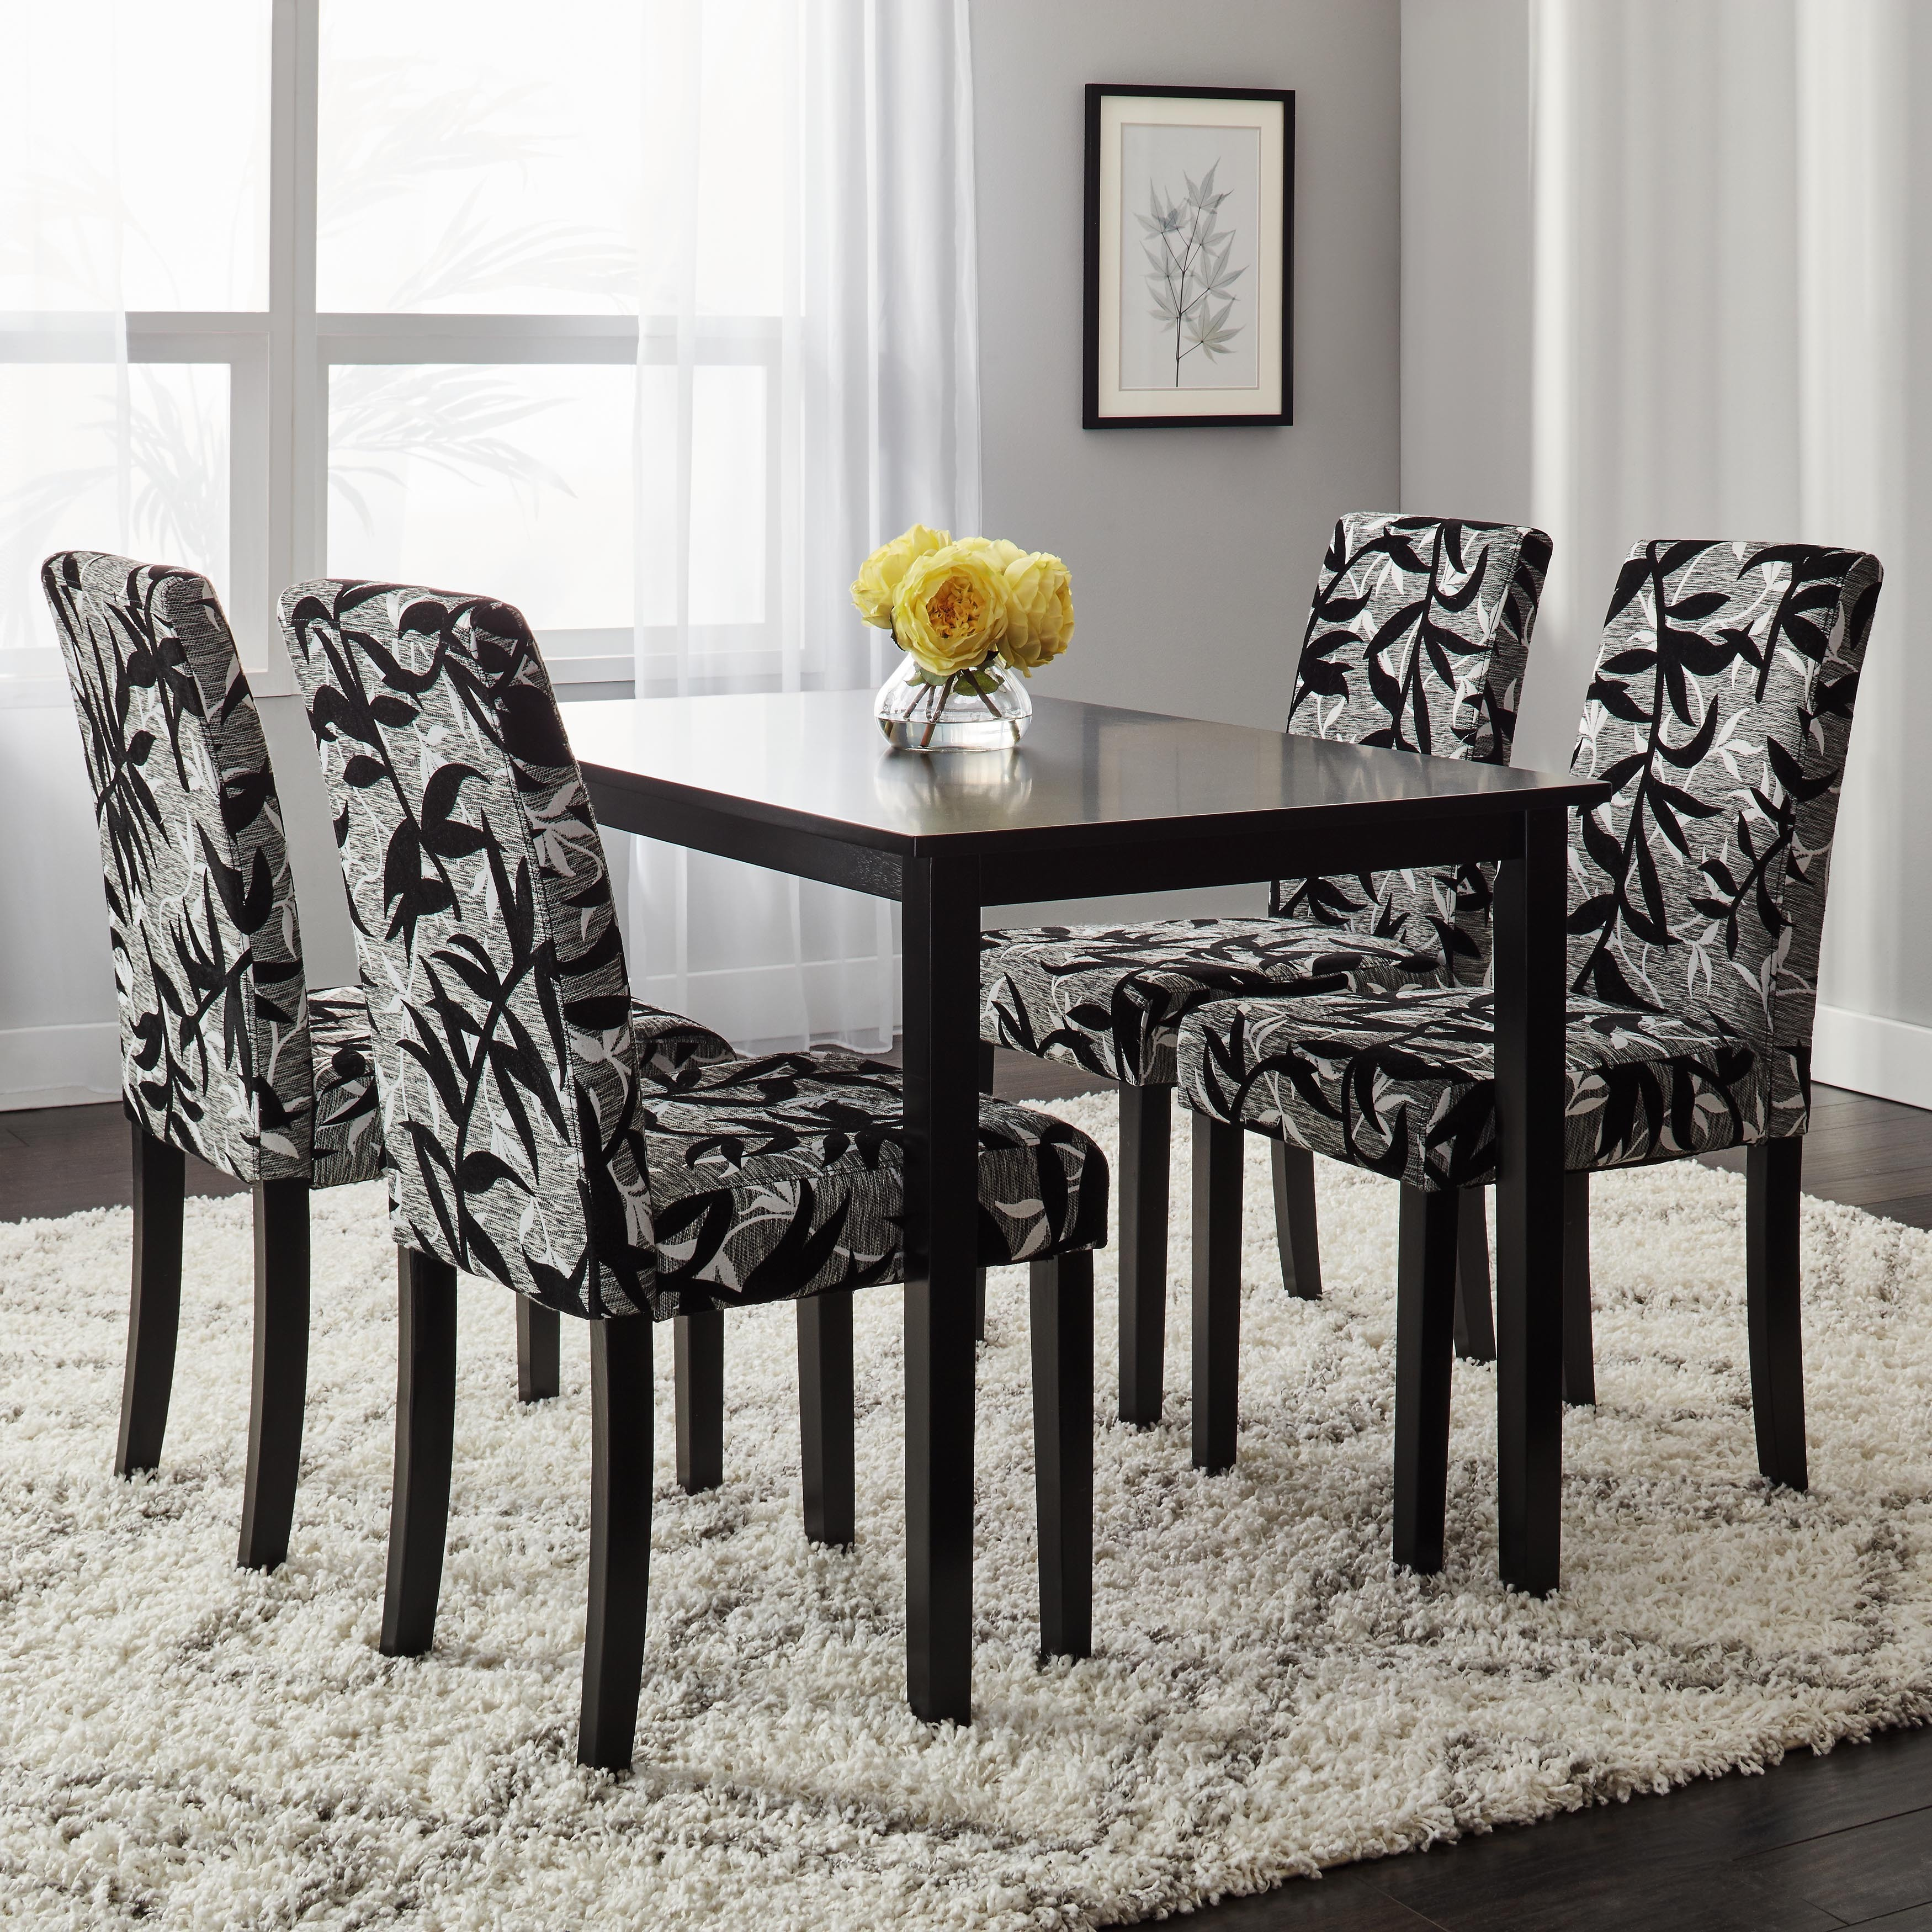 Simple Living Parson Black and Silver 5-Piece Dining Table and Chairs Set - Free Shipping Today - Overstock - 14063800 & Simple Living Parson Black and Silver 5-Piece Dining Table and ...